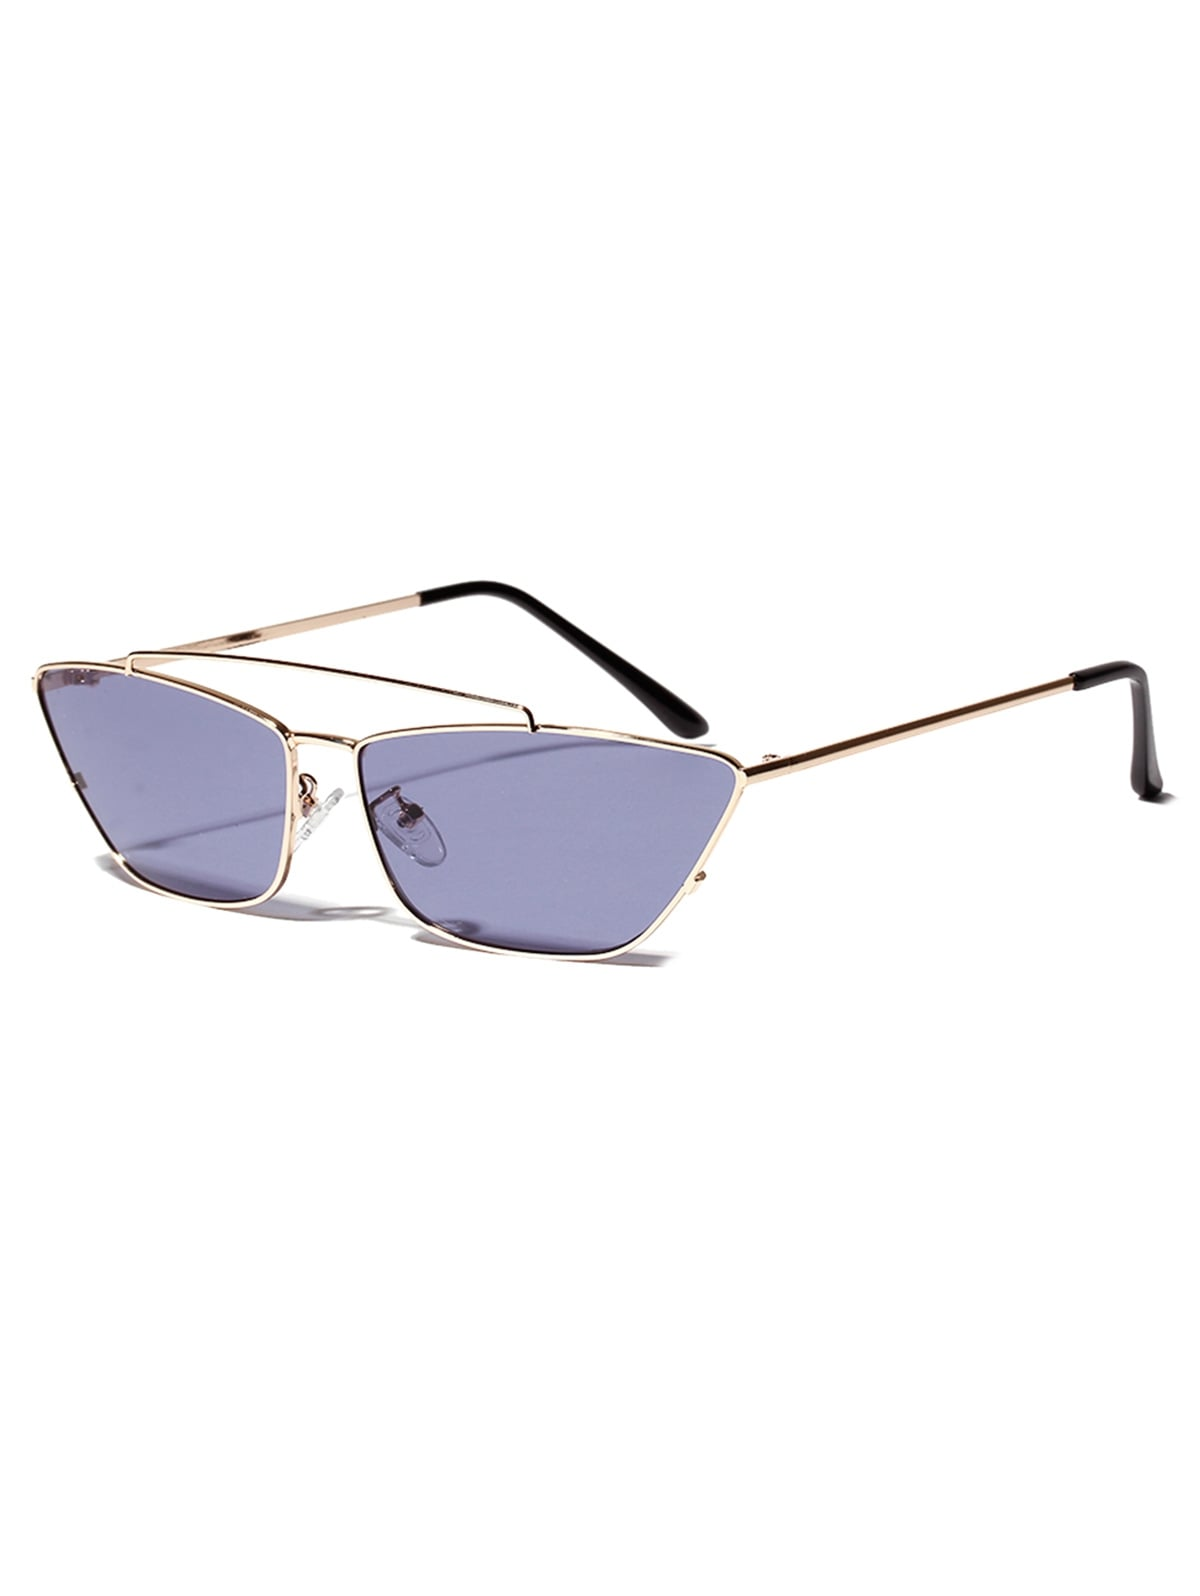 Trapezoid Shape Metal Frame Stylish Sunglasses